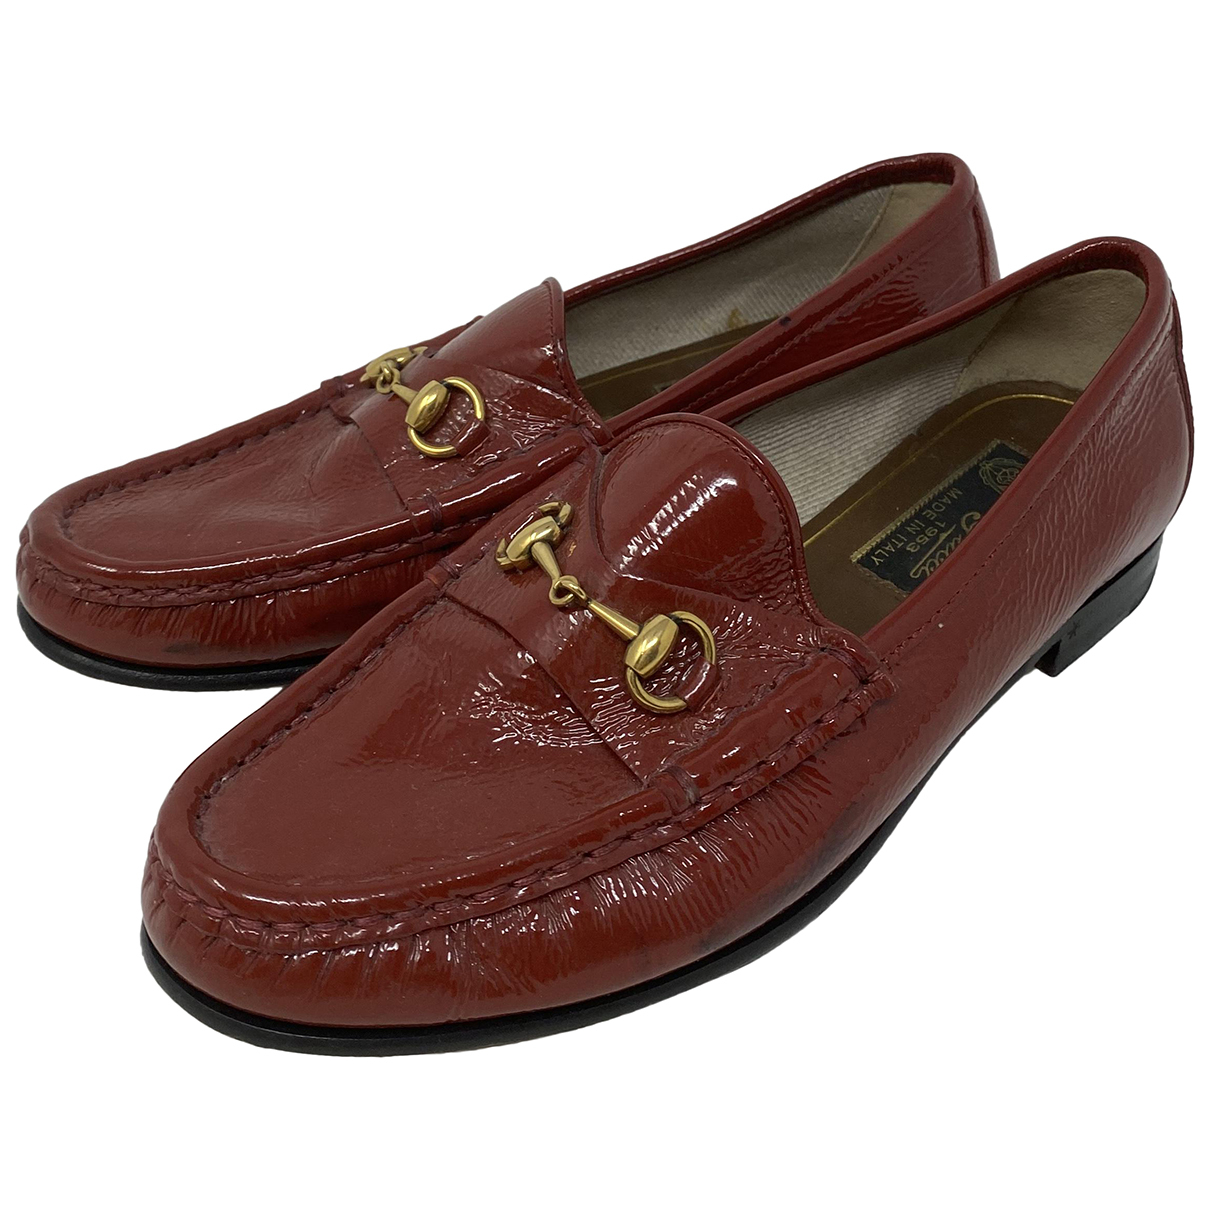 Gucci Brixton Red Patent leather Flats for Women 35.5 EU